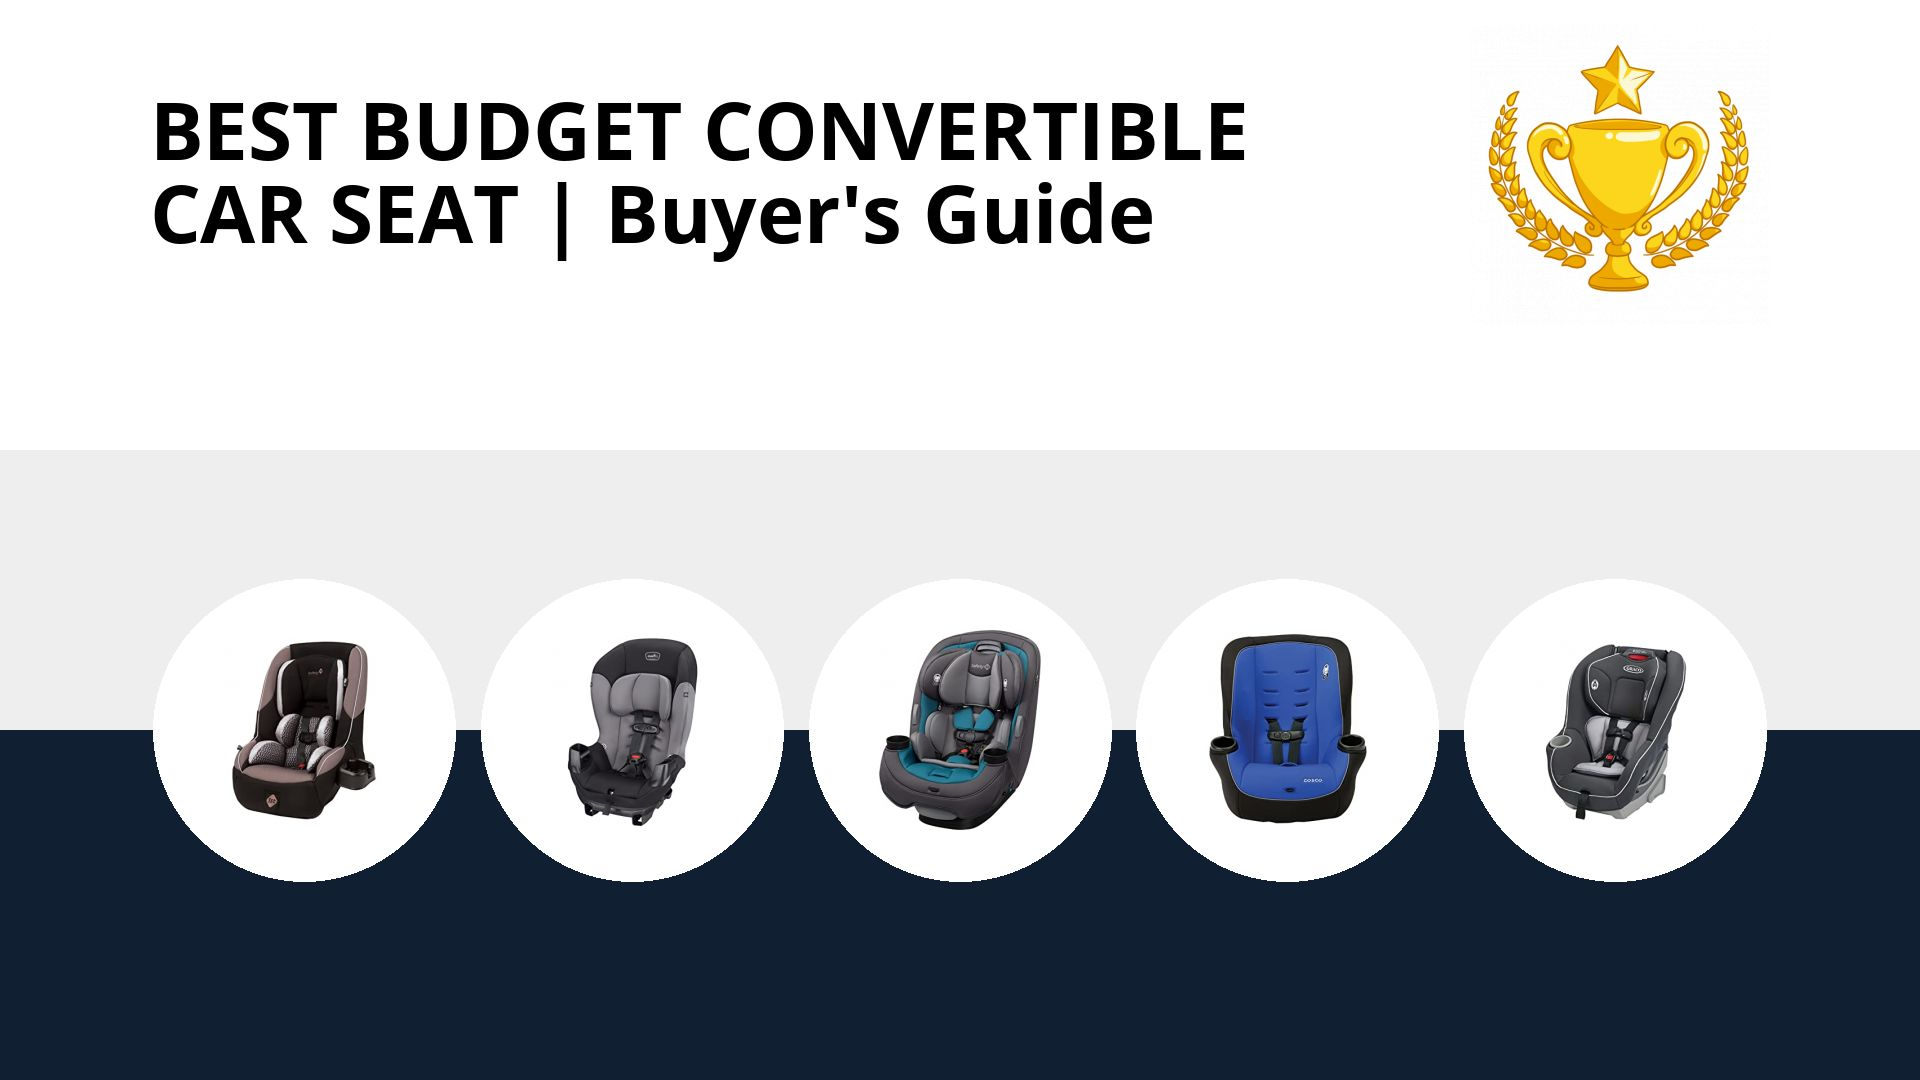 Best Budget Convertible Car Seat: image